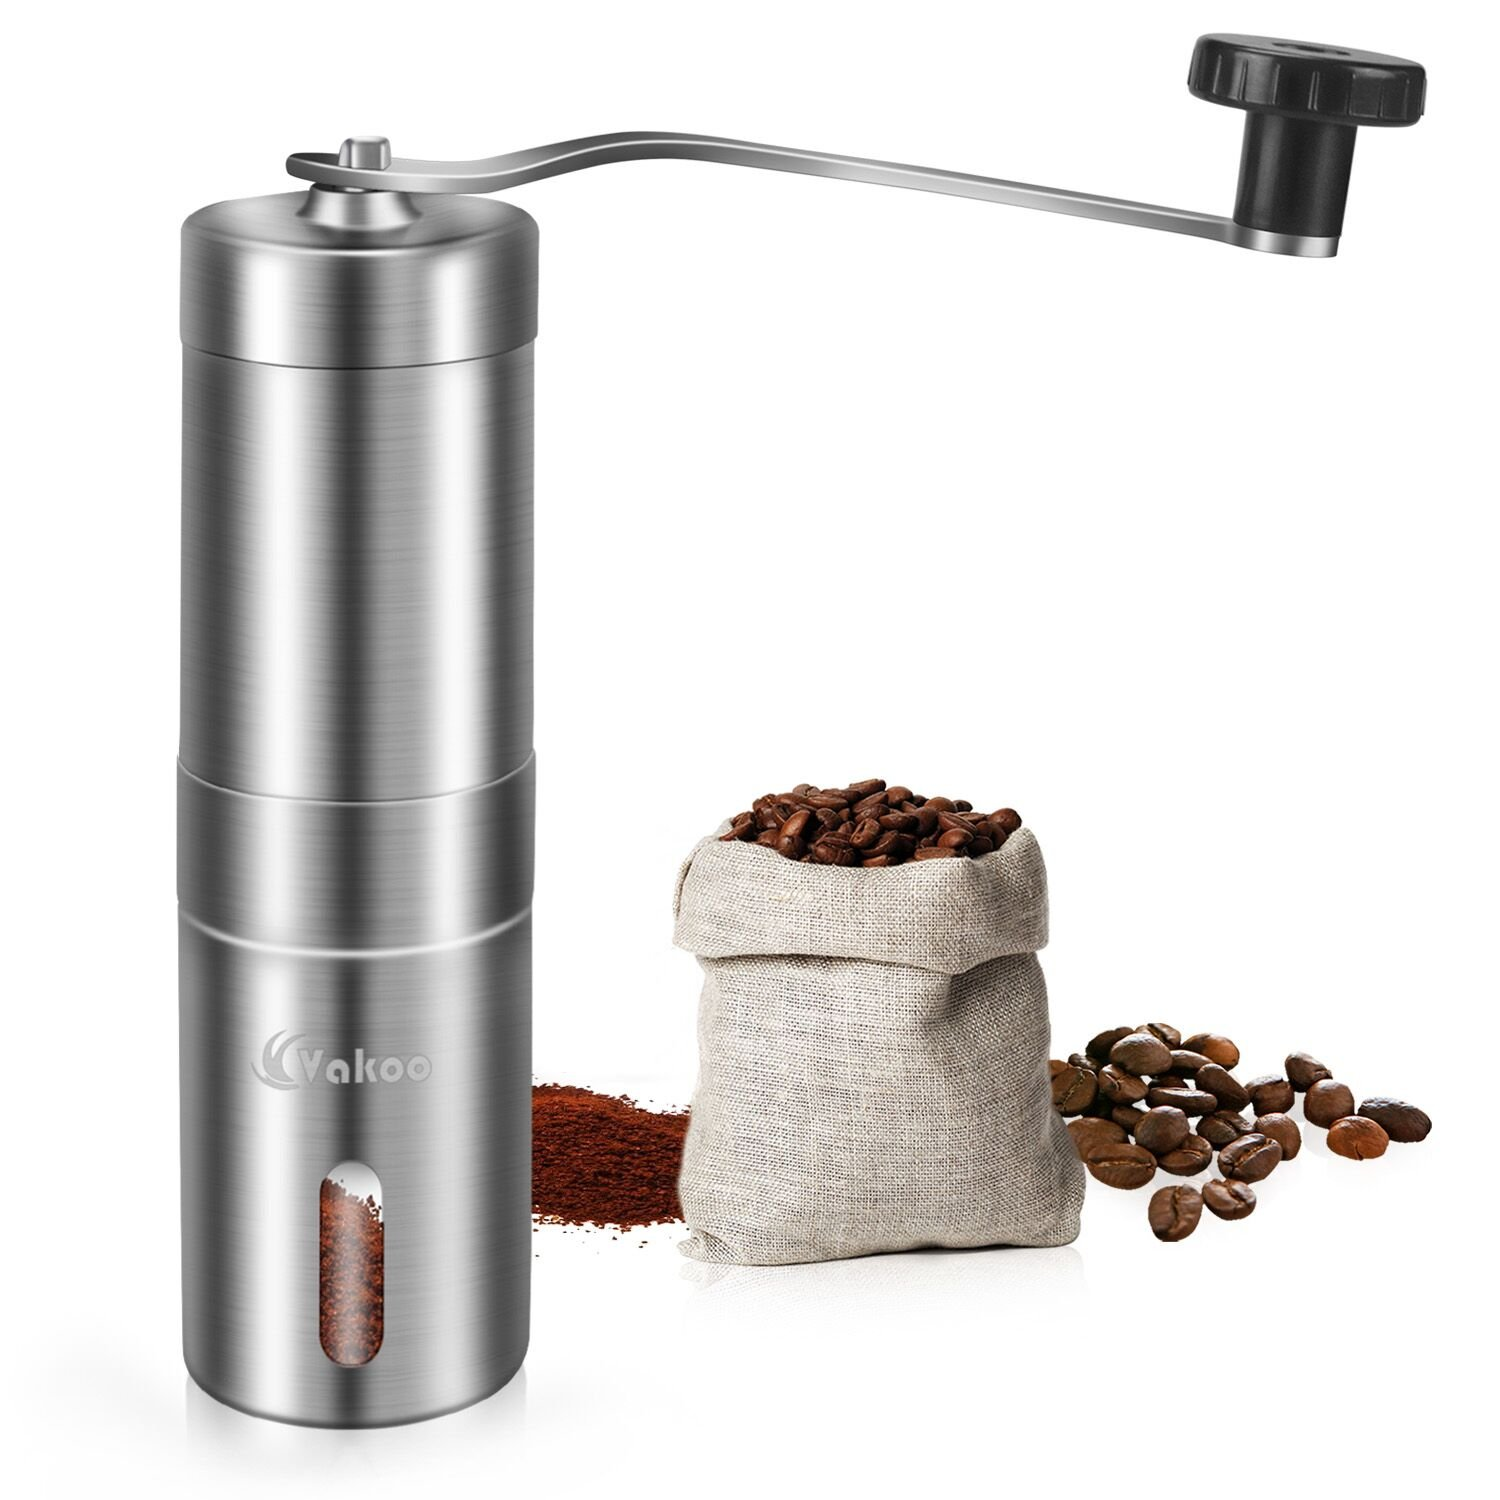 Vakoo Manual Coffee Grinder, Portable Burr Coffee Grinder with Adjustable Conical Burr Mill for French Press, Turkish, Handheld Mini, K Cup, Brushed Stainless Steel